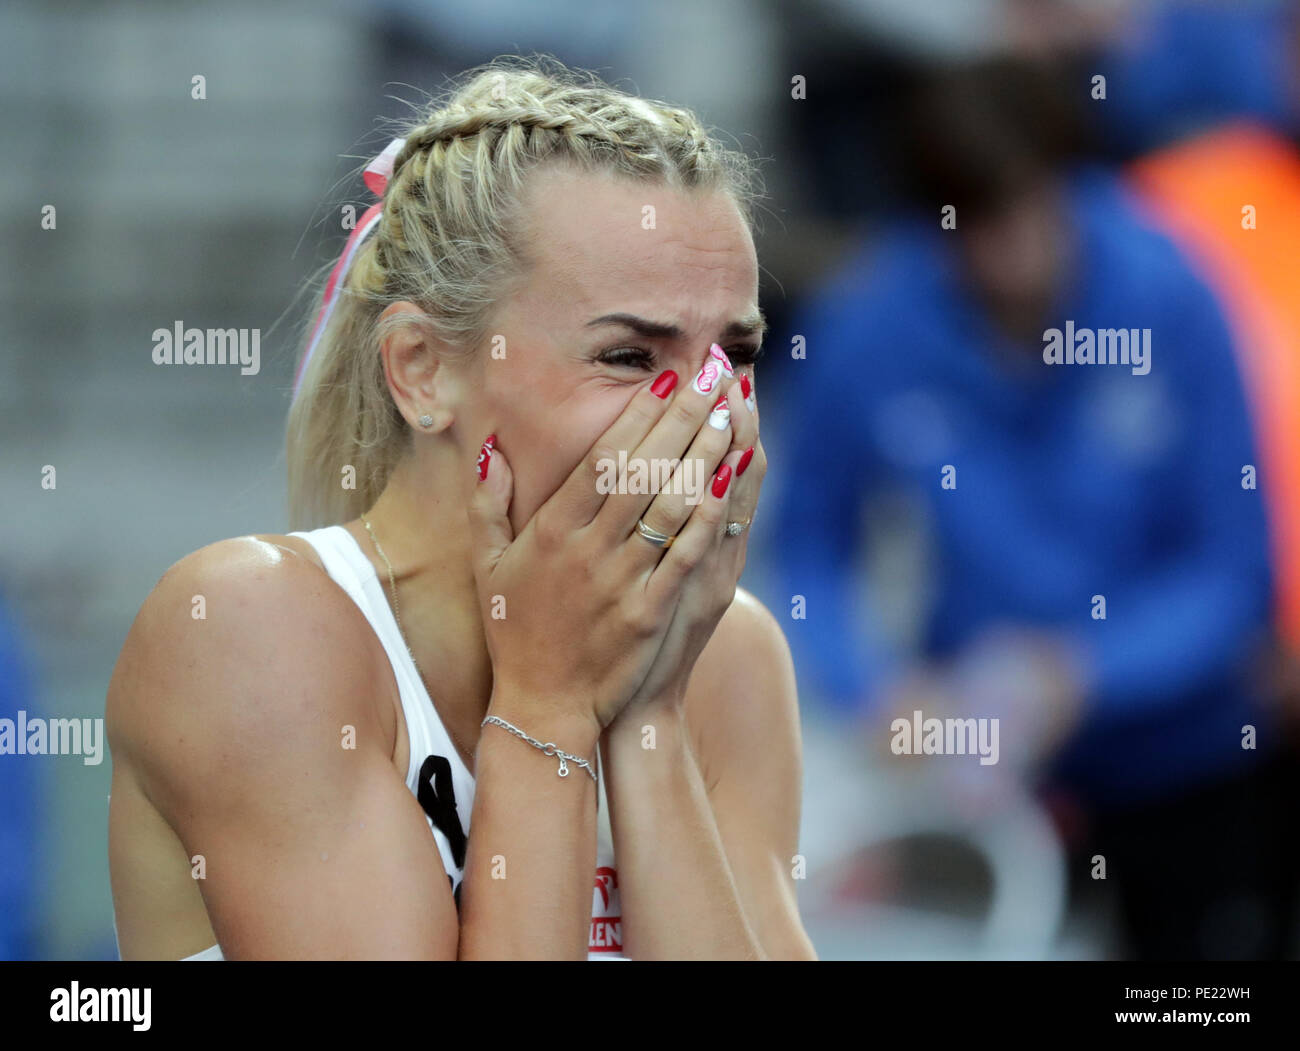 Berlin, Germany. 11th Aug, 2018. European Athletics Championships in the Olympic Stadium: 400 m finals, women: Gold medallist Justyna Swiety-Ersetic from Poland celebrates at the finish line. Credit: Kay Nietfeld/dpa/Alamy Live News - Stock Image